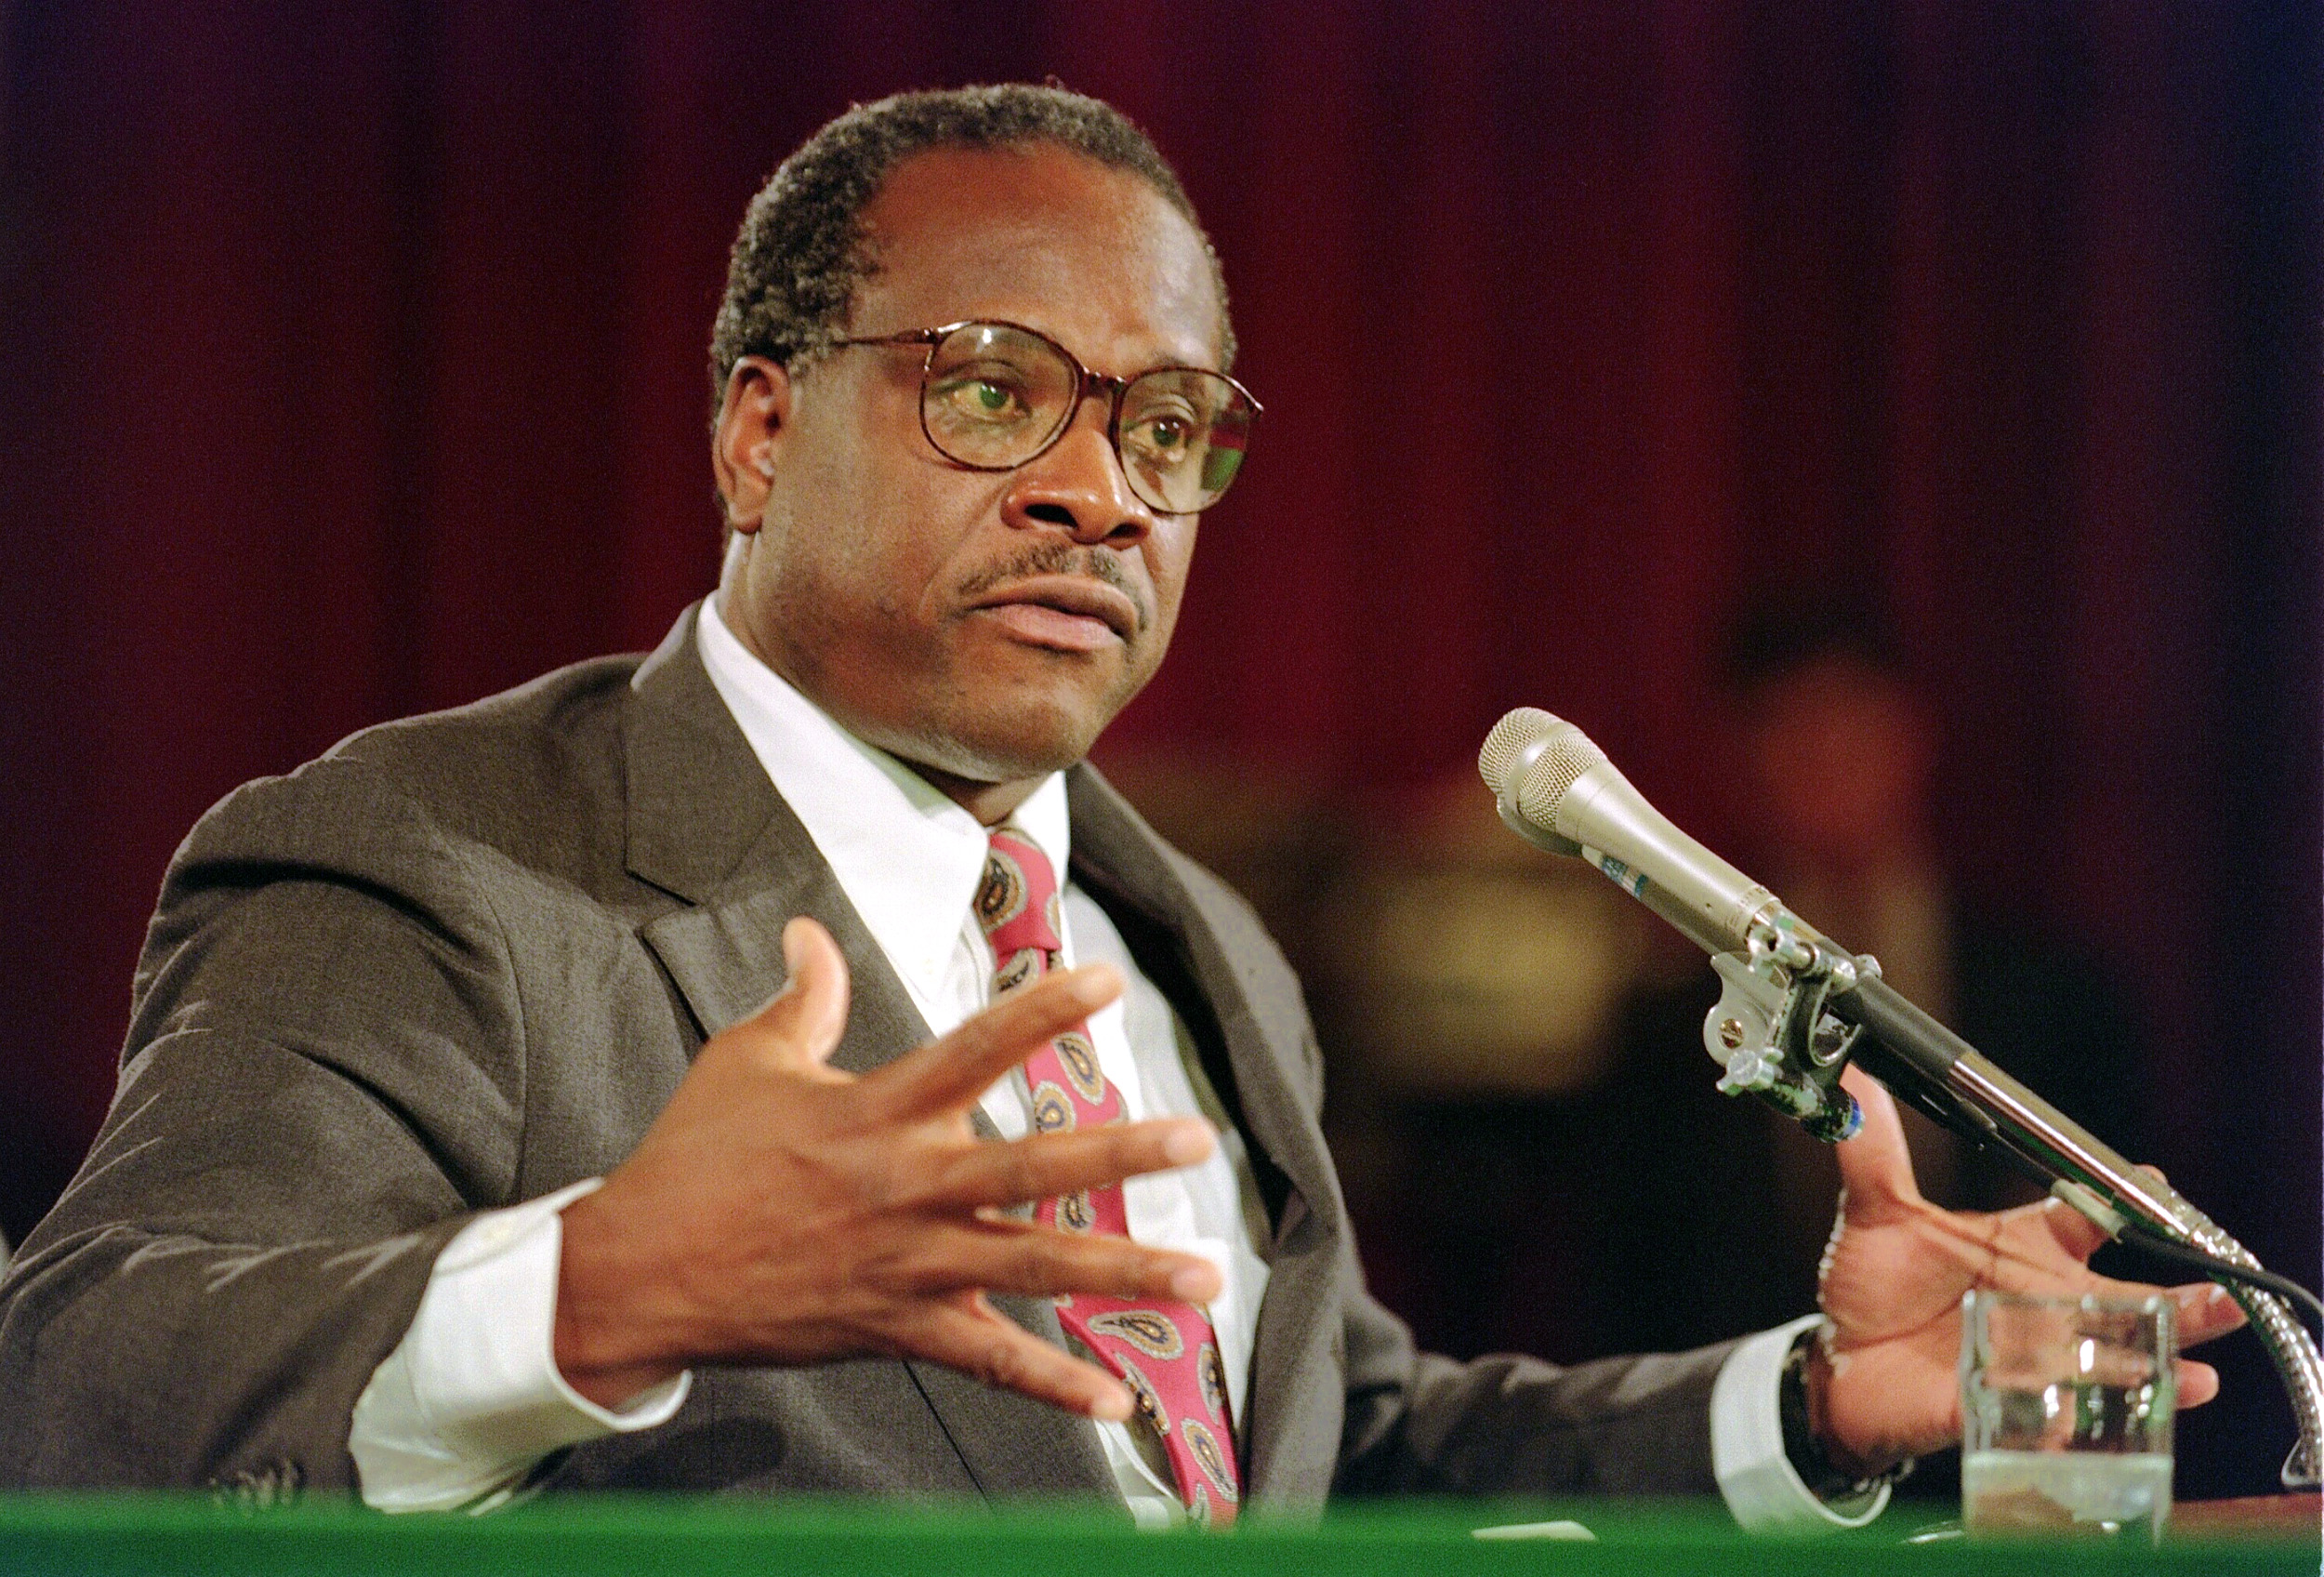 Justice Clarence Thomas during his confirmation hearing for the Supreme Court on September 10, 1991 (J. David Ake/AFP/Getty Images)